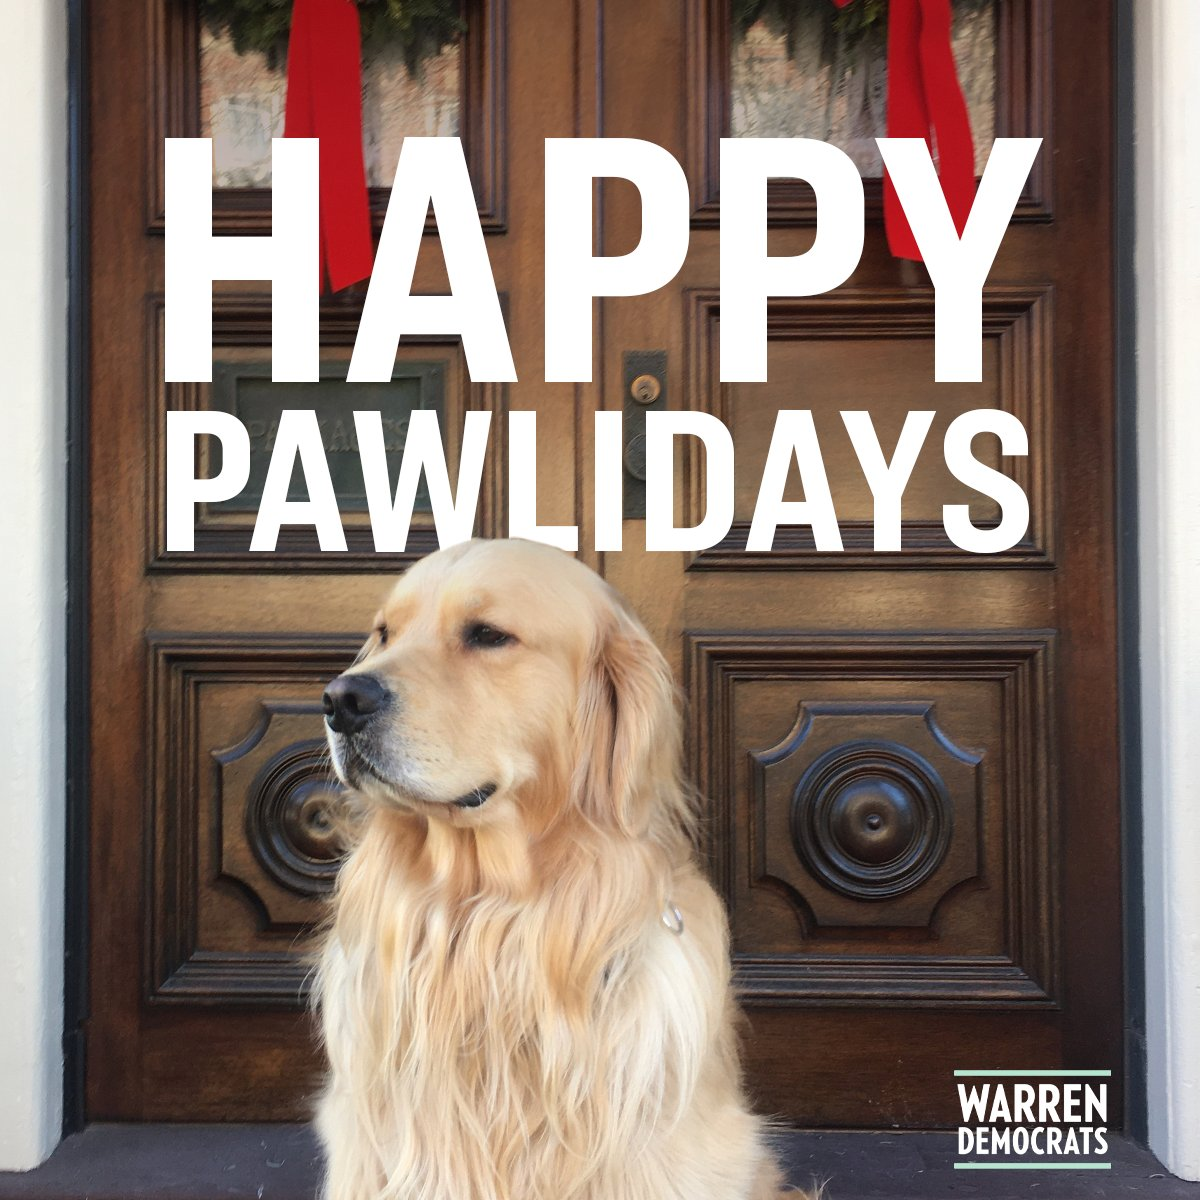 From my family to yours, merry Christmas! Bruce, Bailey, and I hope you're having a safe, healthy holiday season.